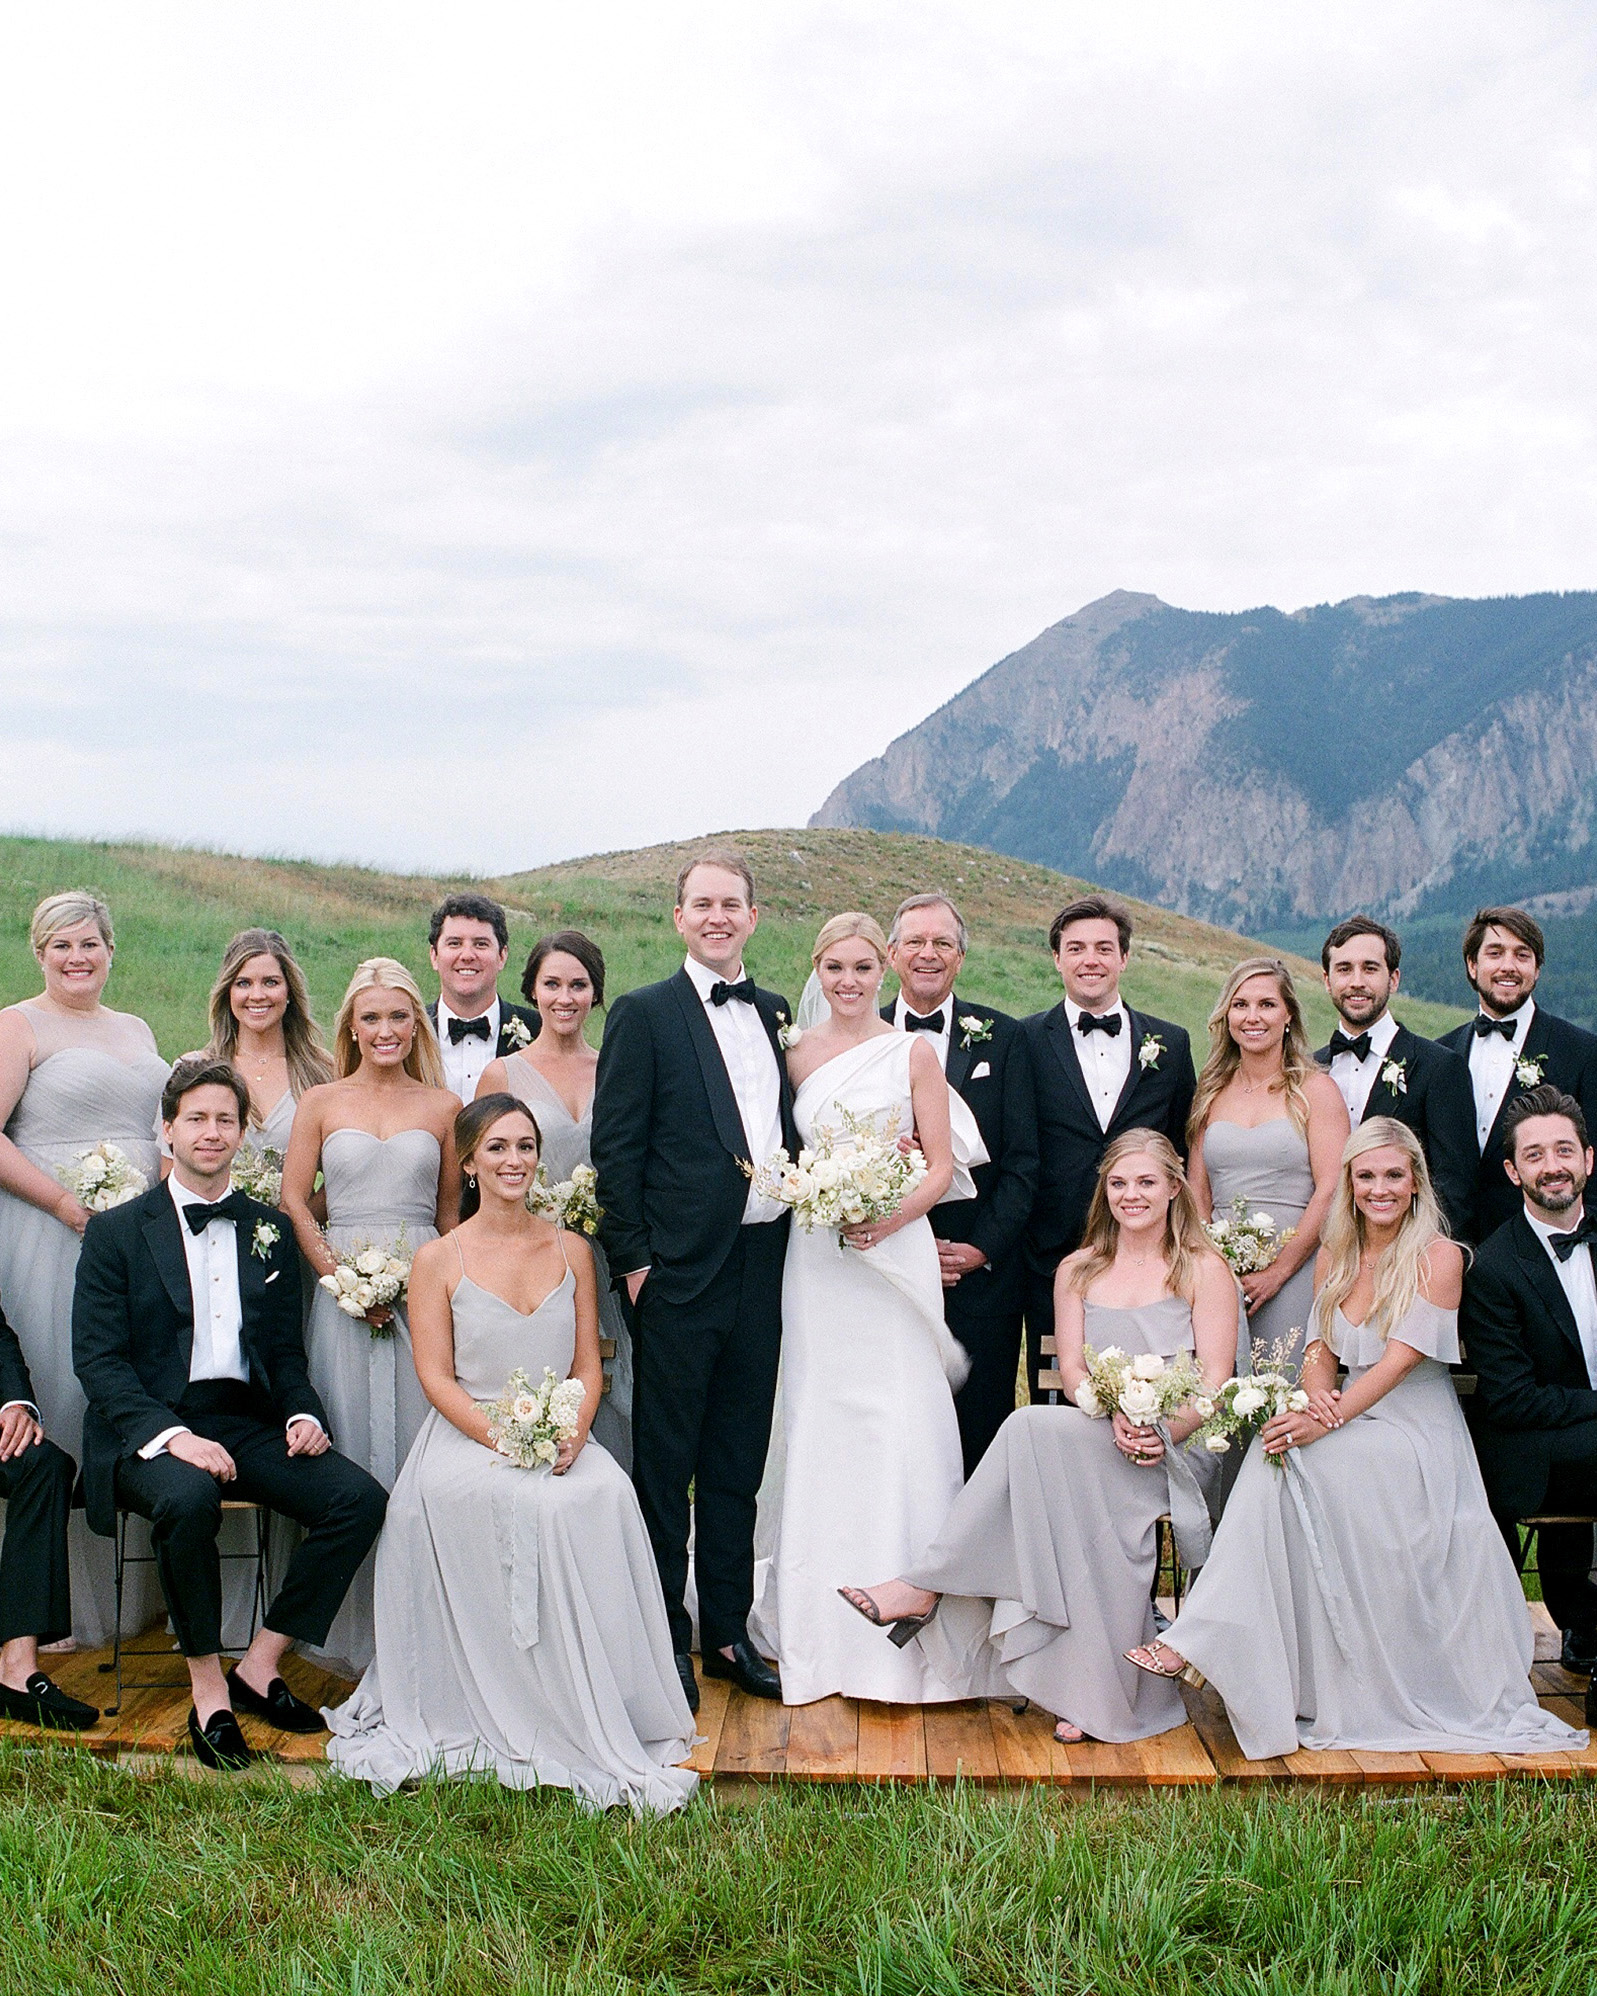 sloan scott wedding party with mountain backdrop